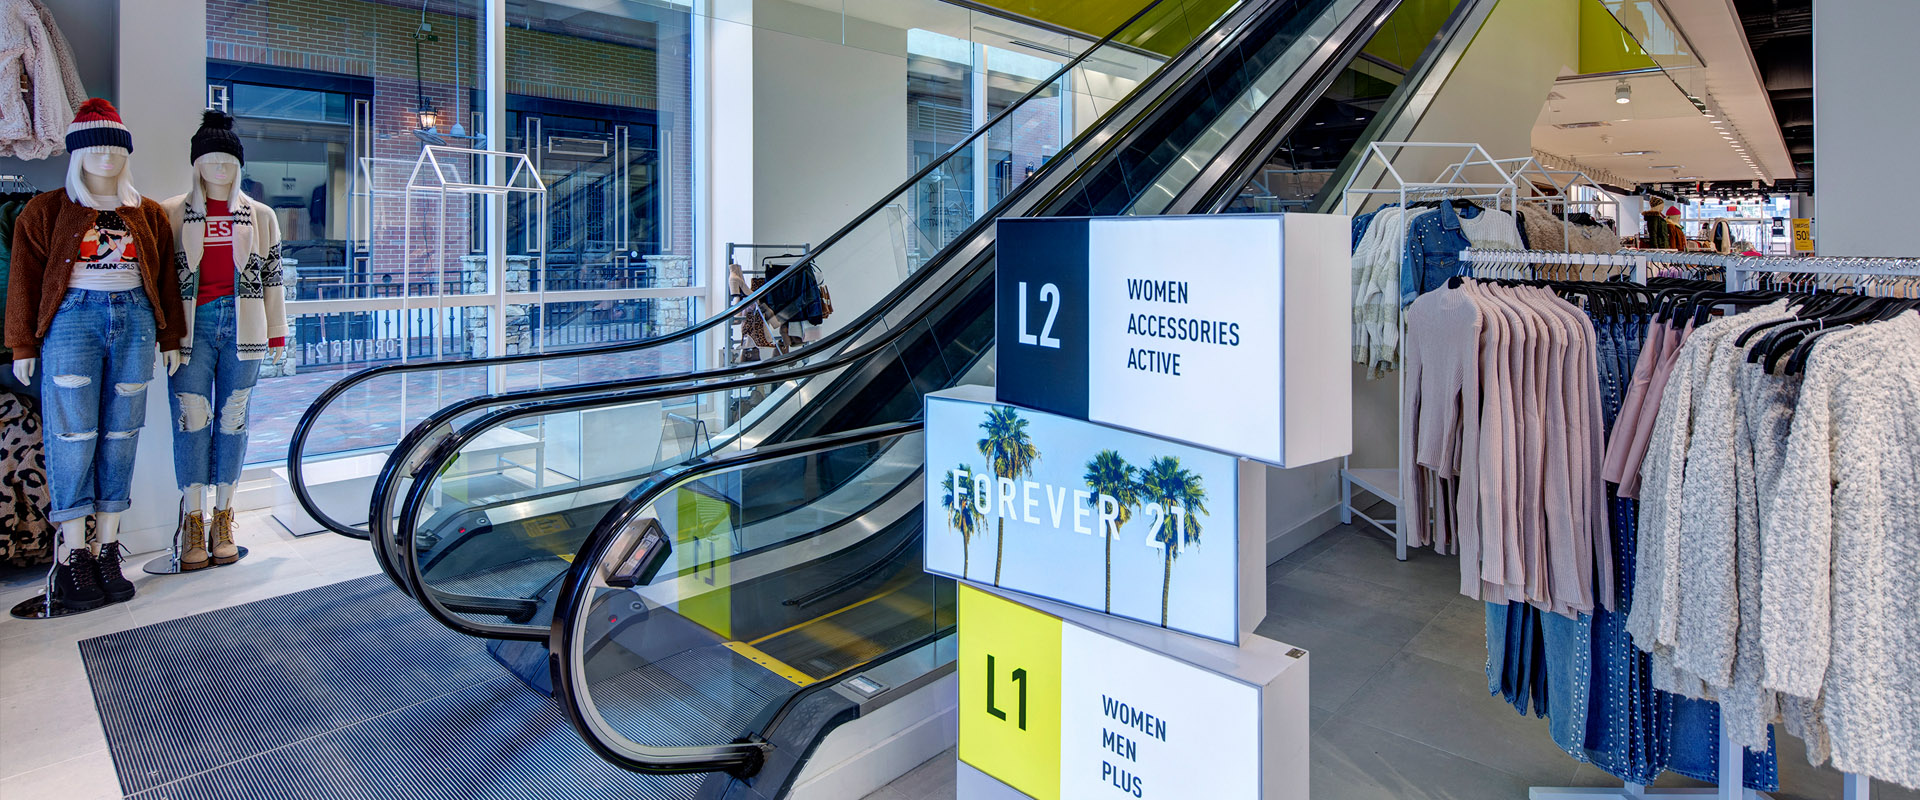 H&M, Forever 21, and Bowlero at Atlantic Station - Escalator